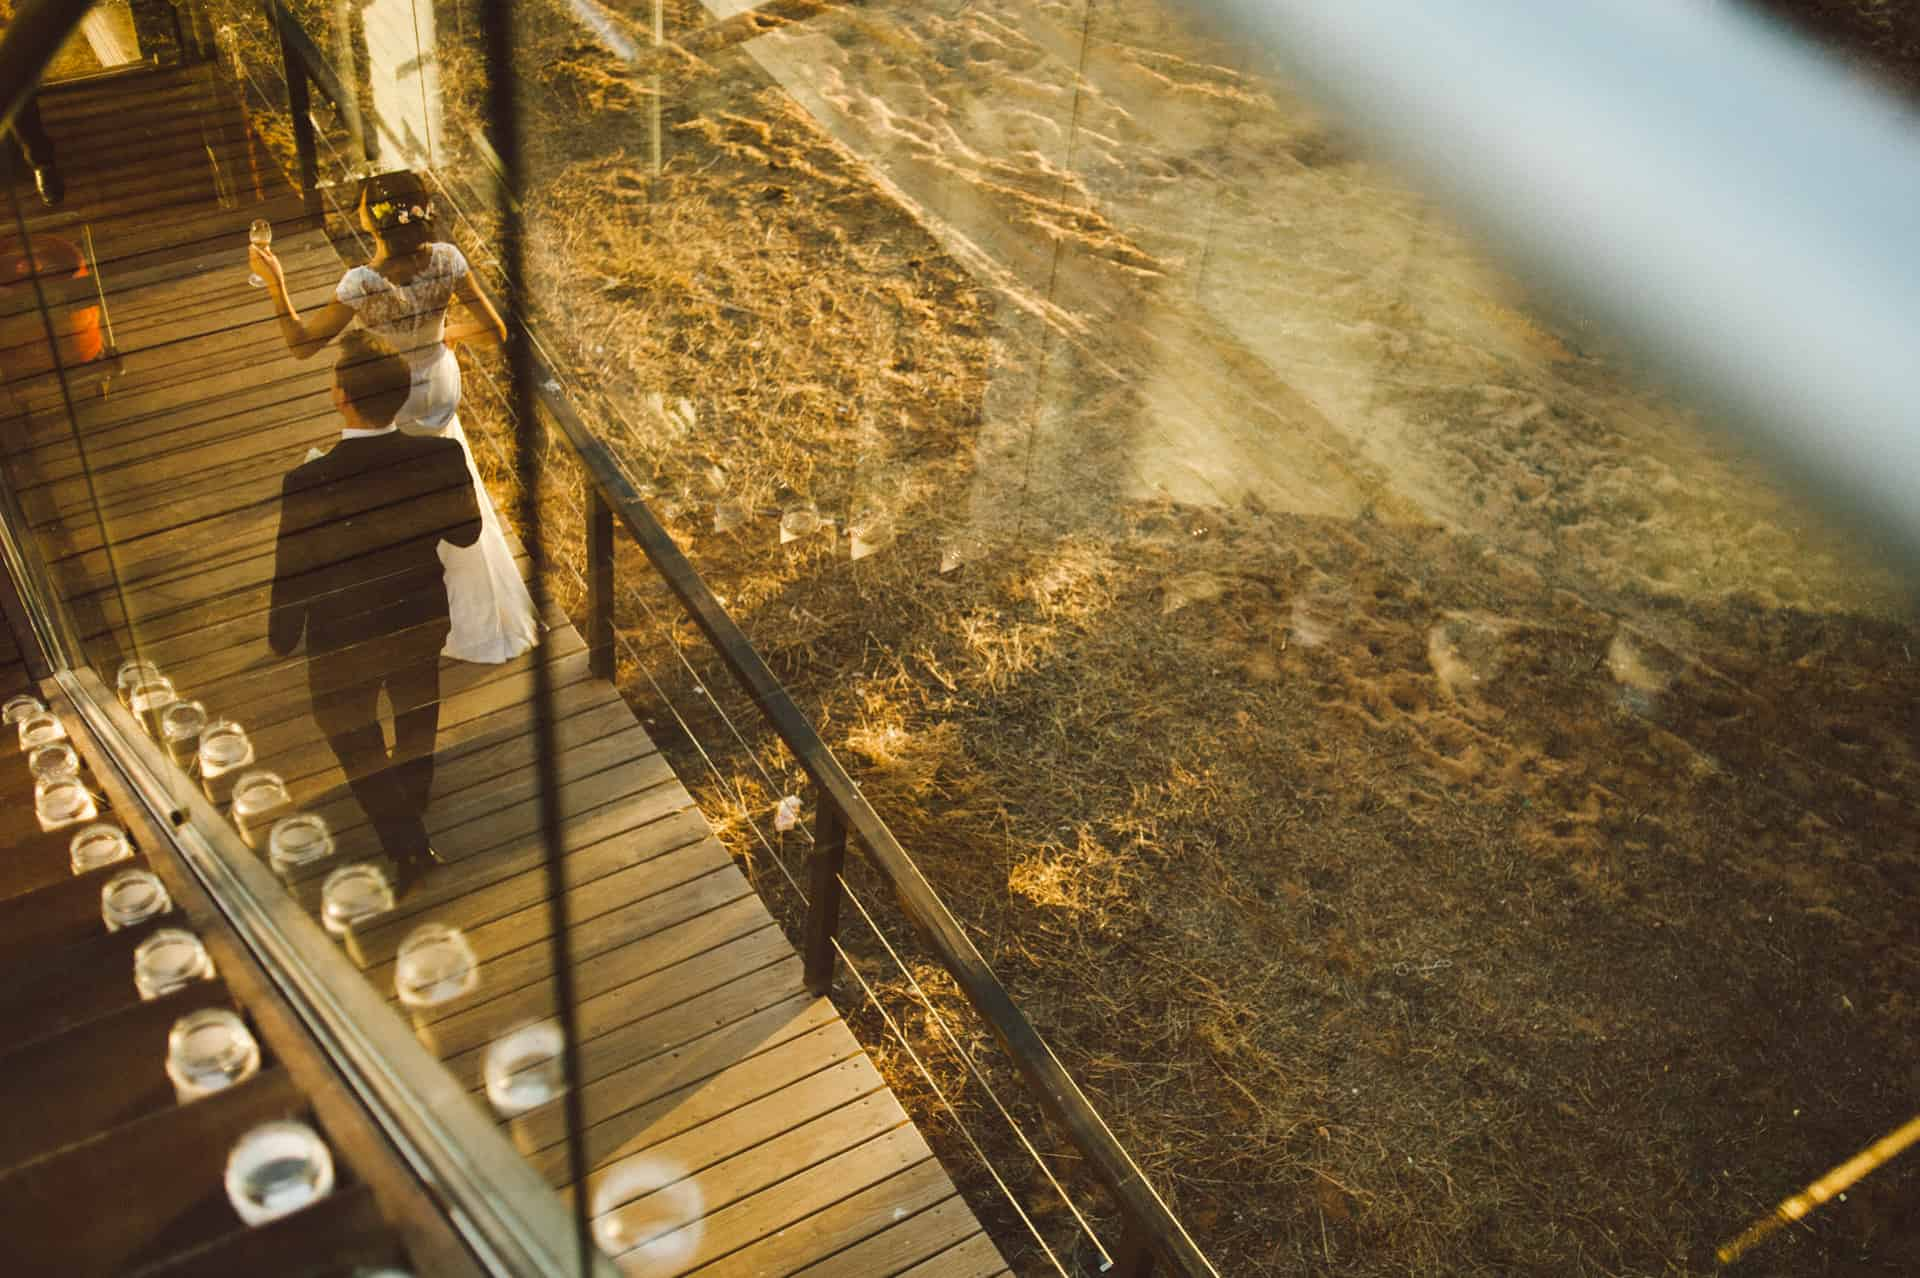 Best wedding images of the year (201 of 316)